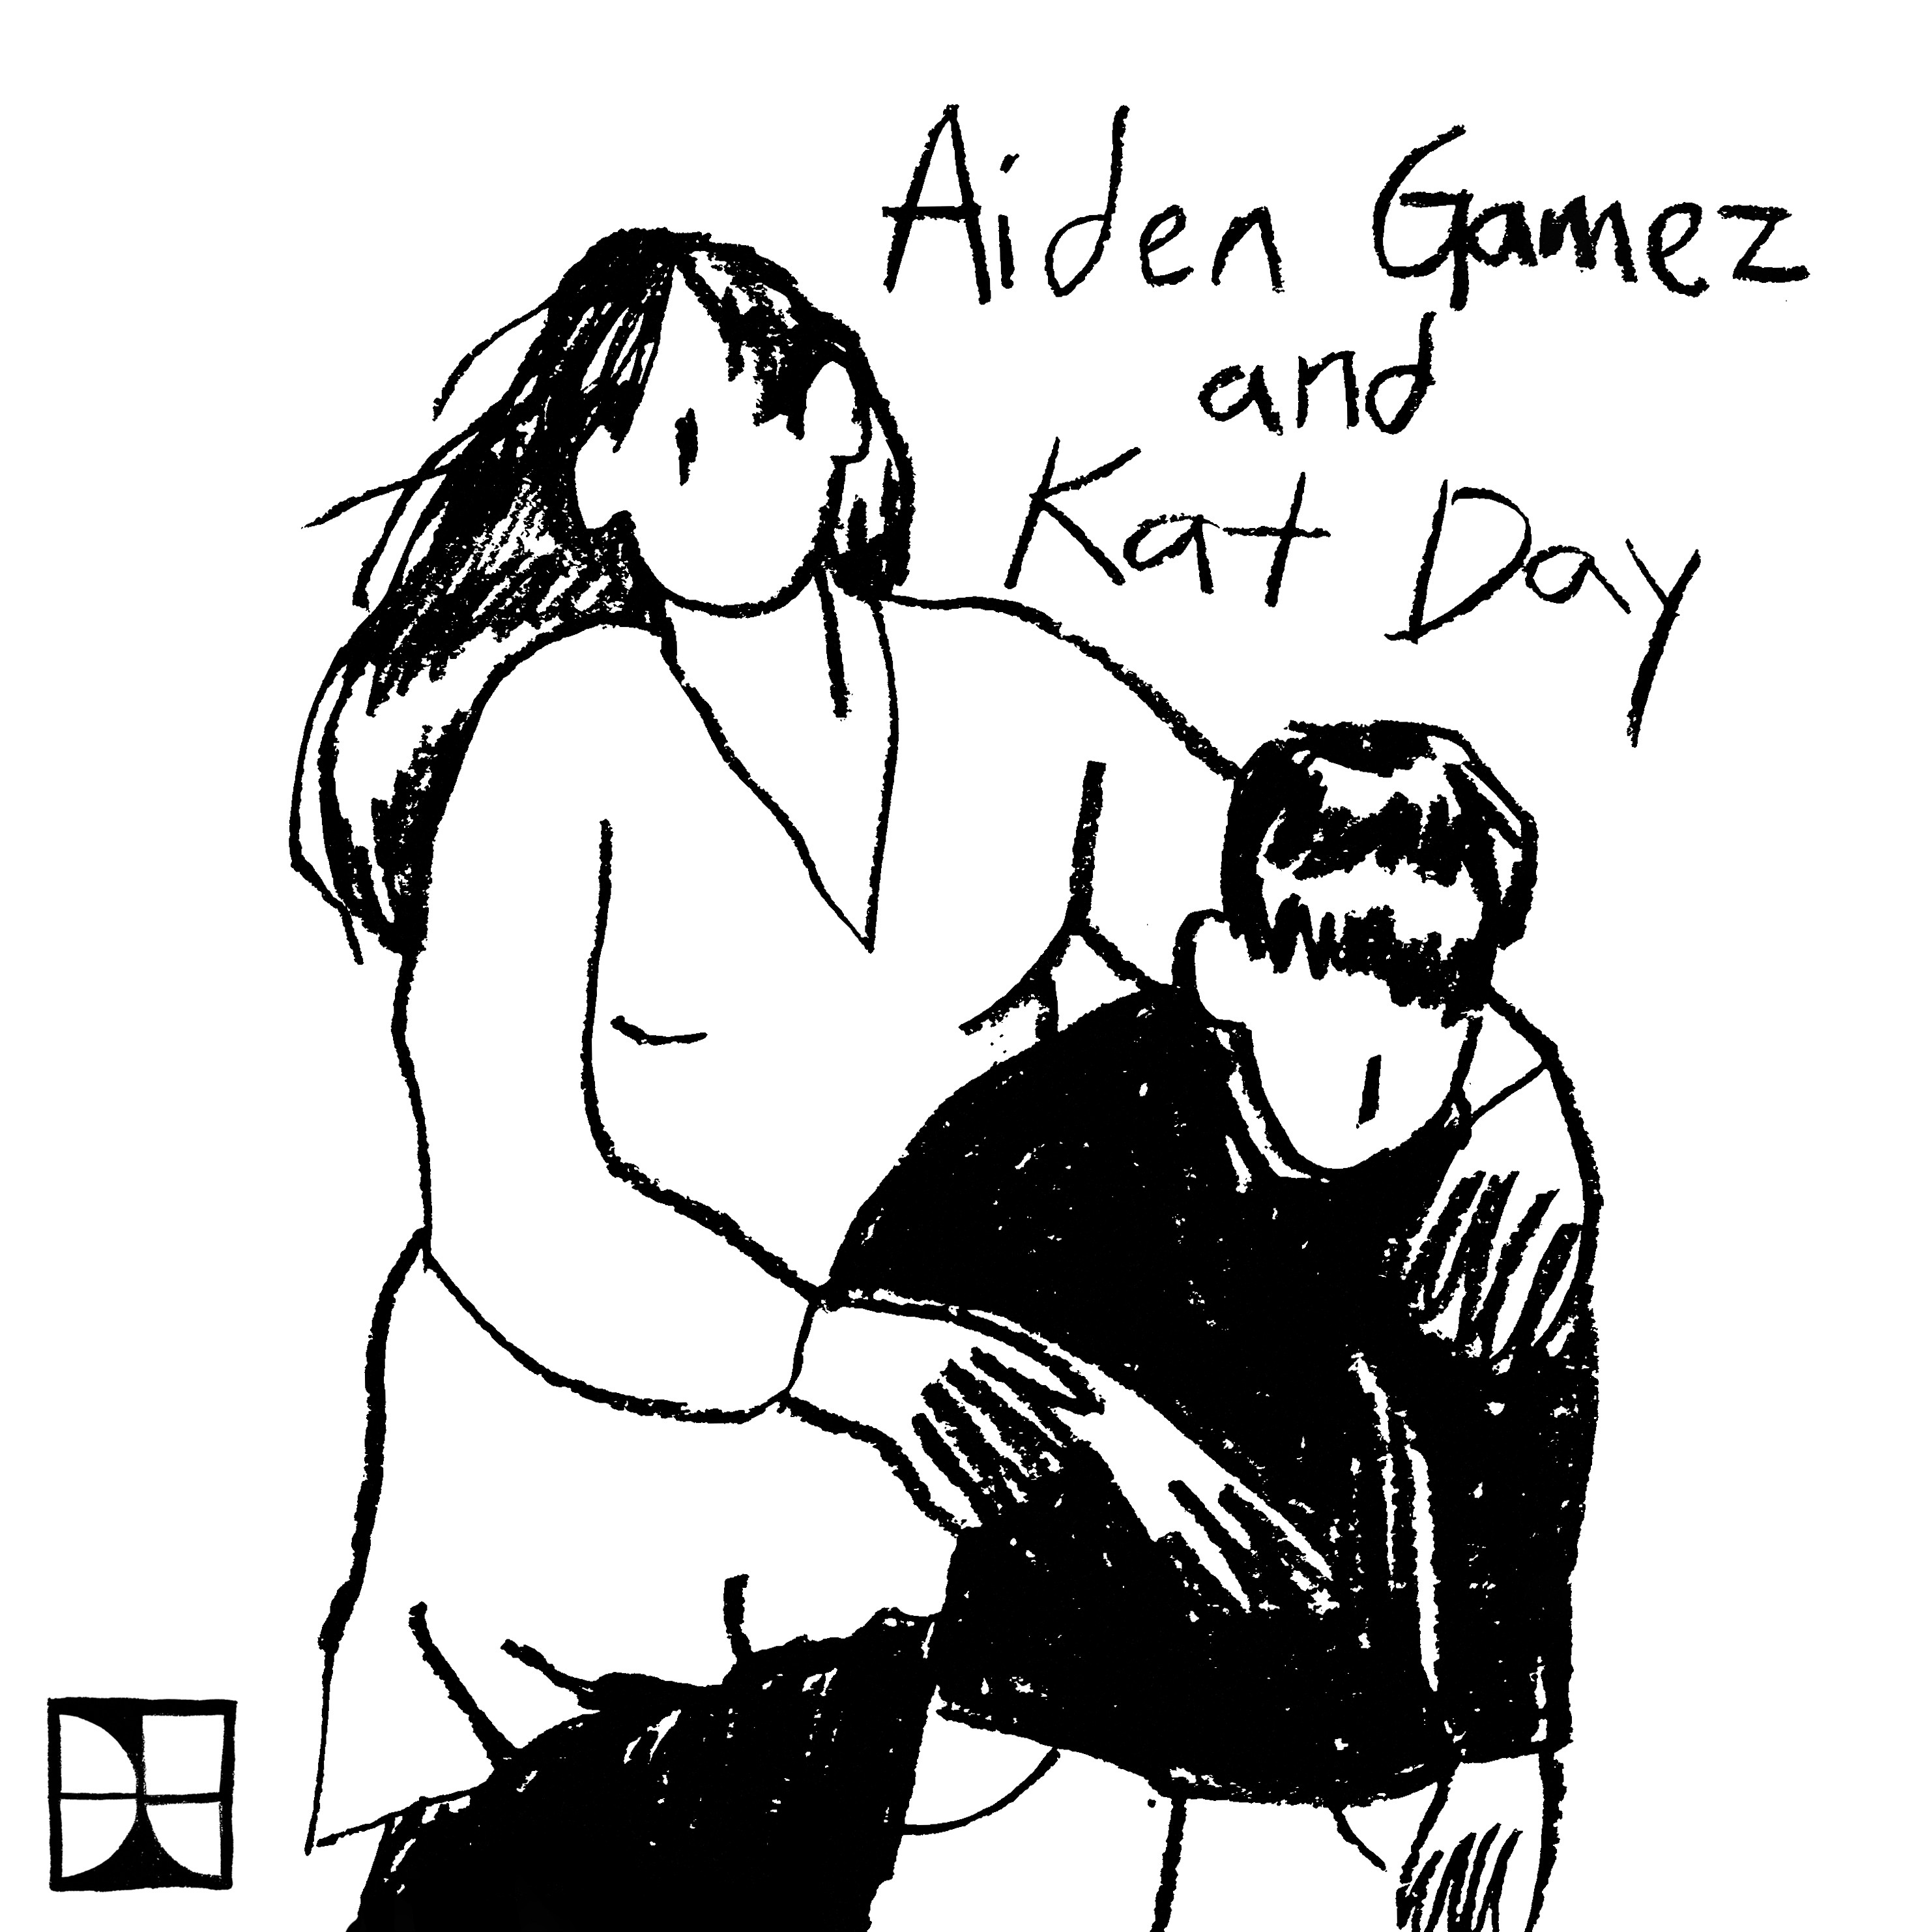 Sketch of Aiden Gamez and Kat Day